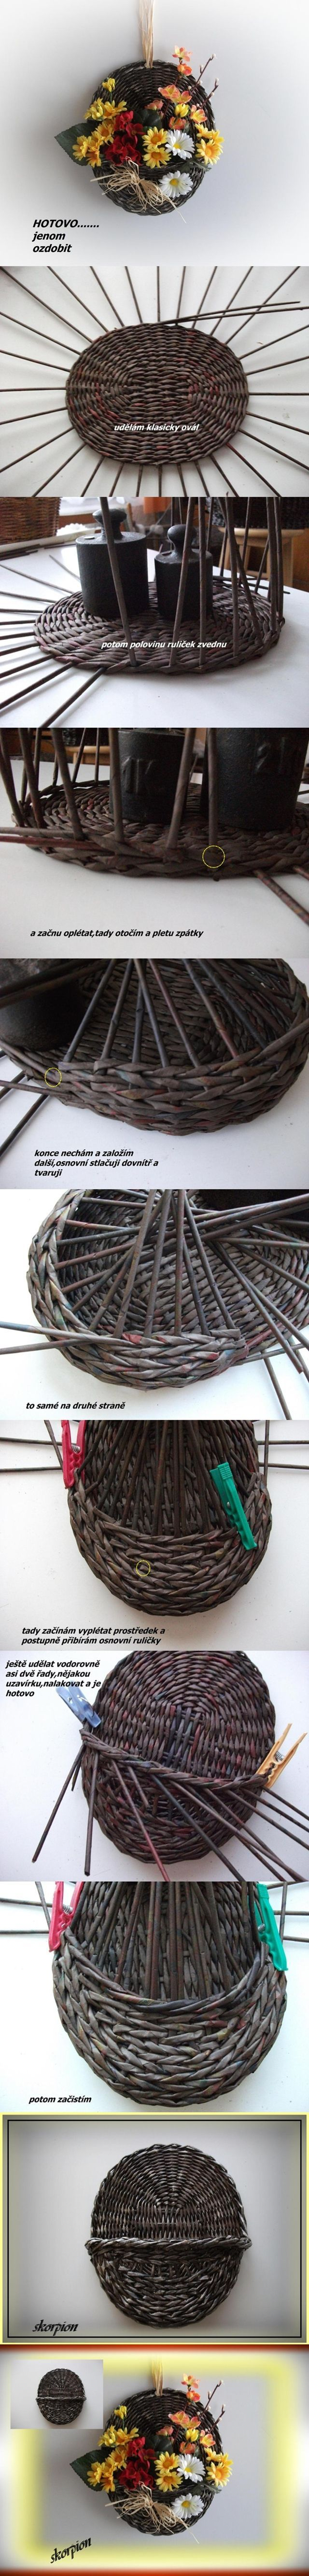 DIY Woven Hanger Planter from Newspaper | www.FabArtDIY.com LIKE Us on Facebook == https://www.facebook.com/FabArtDIY: